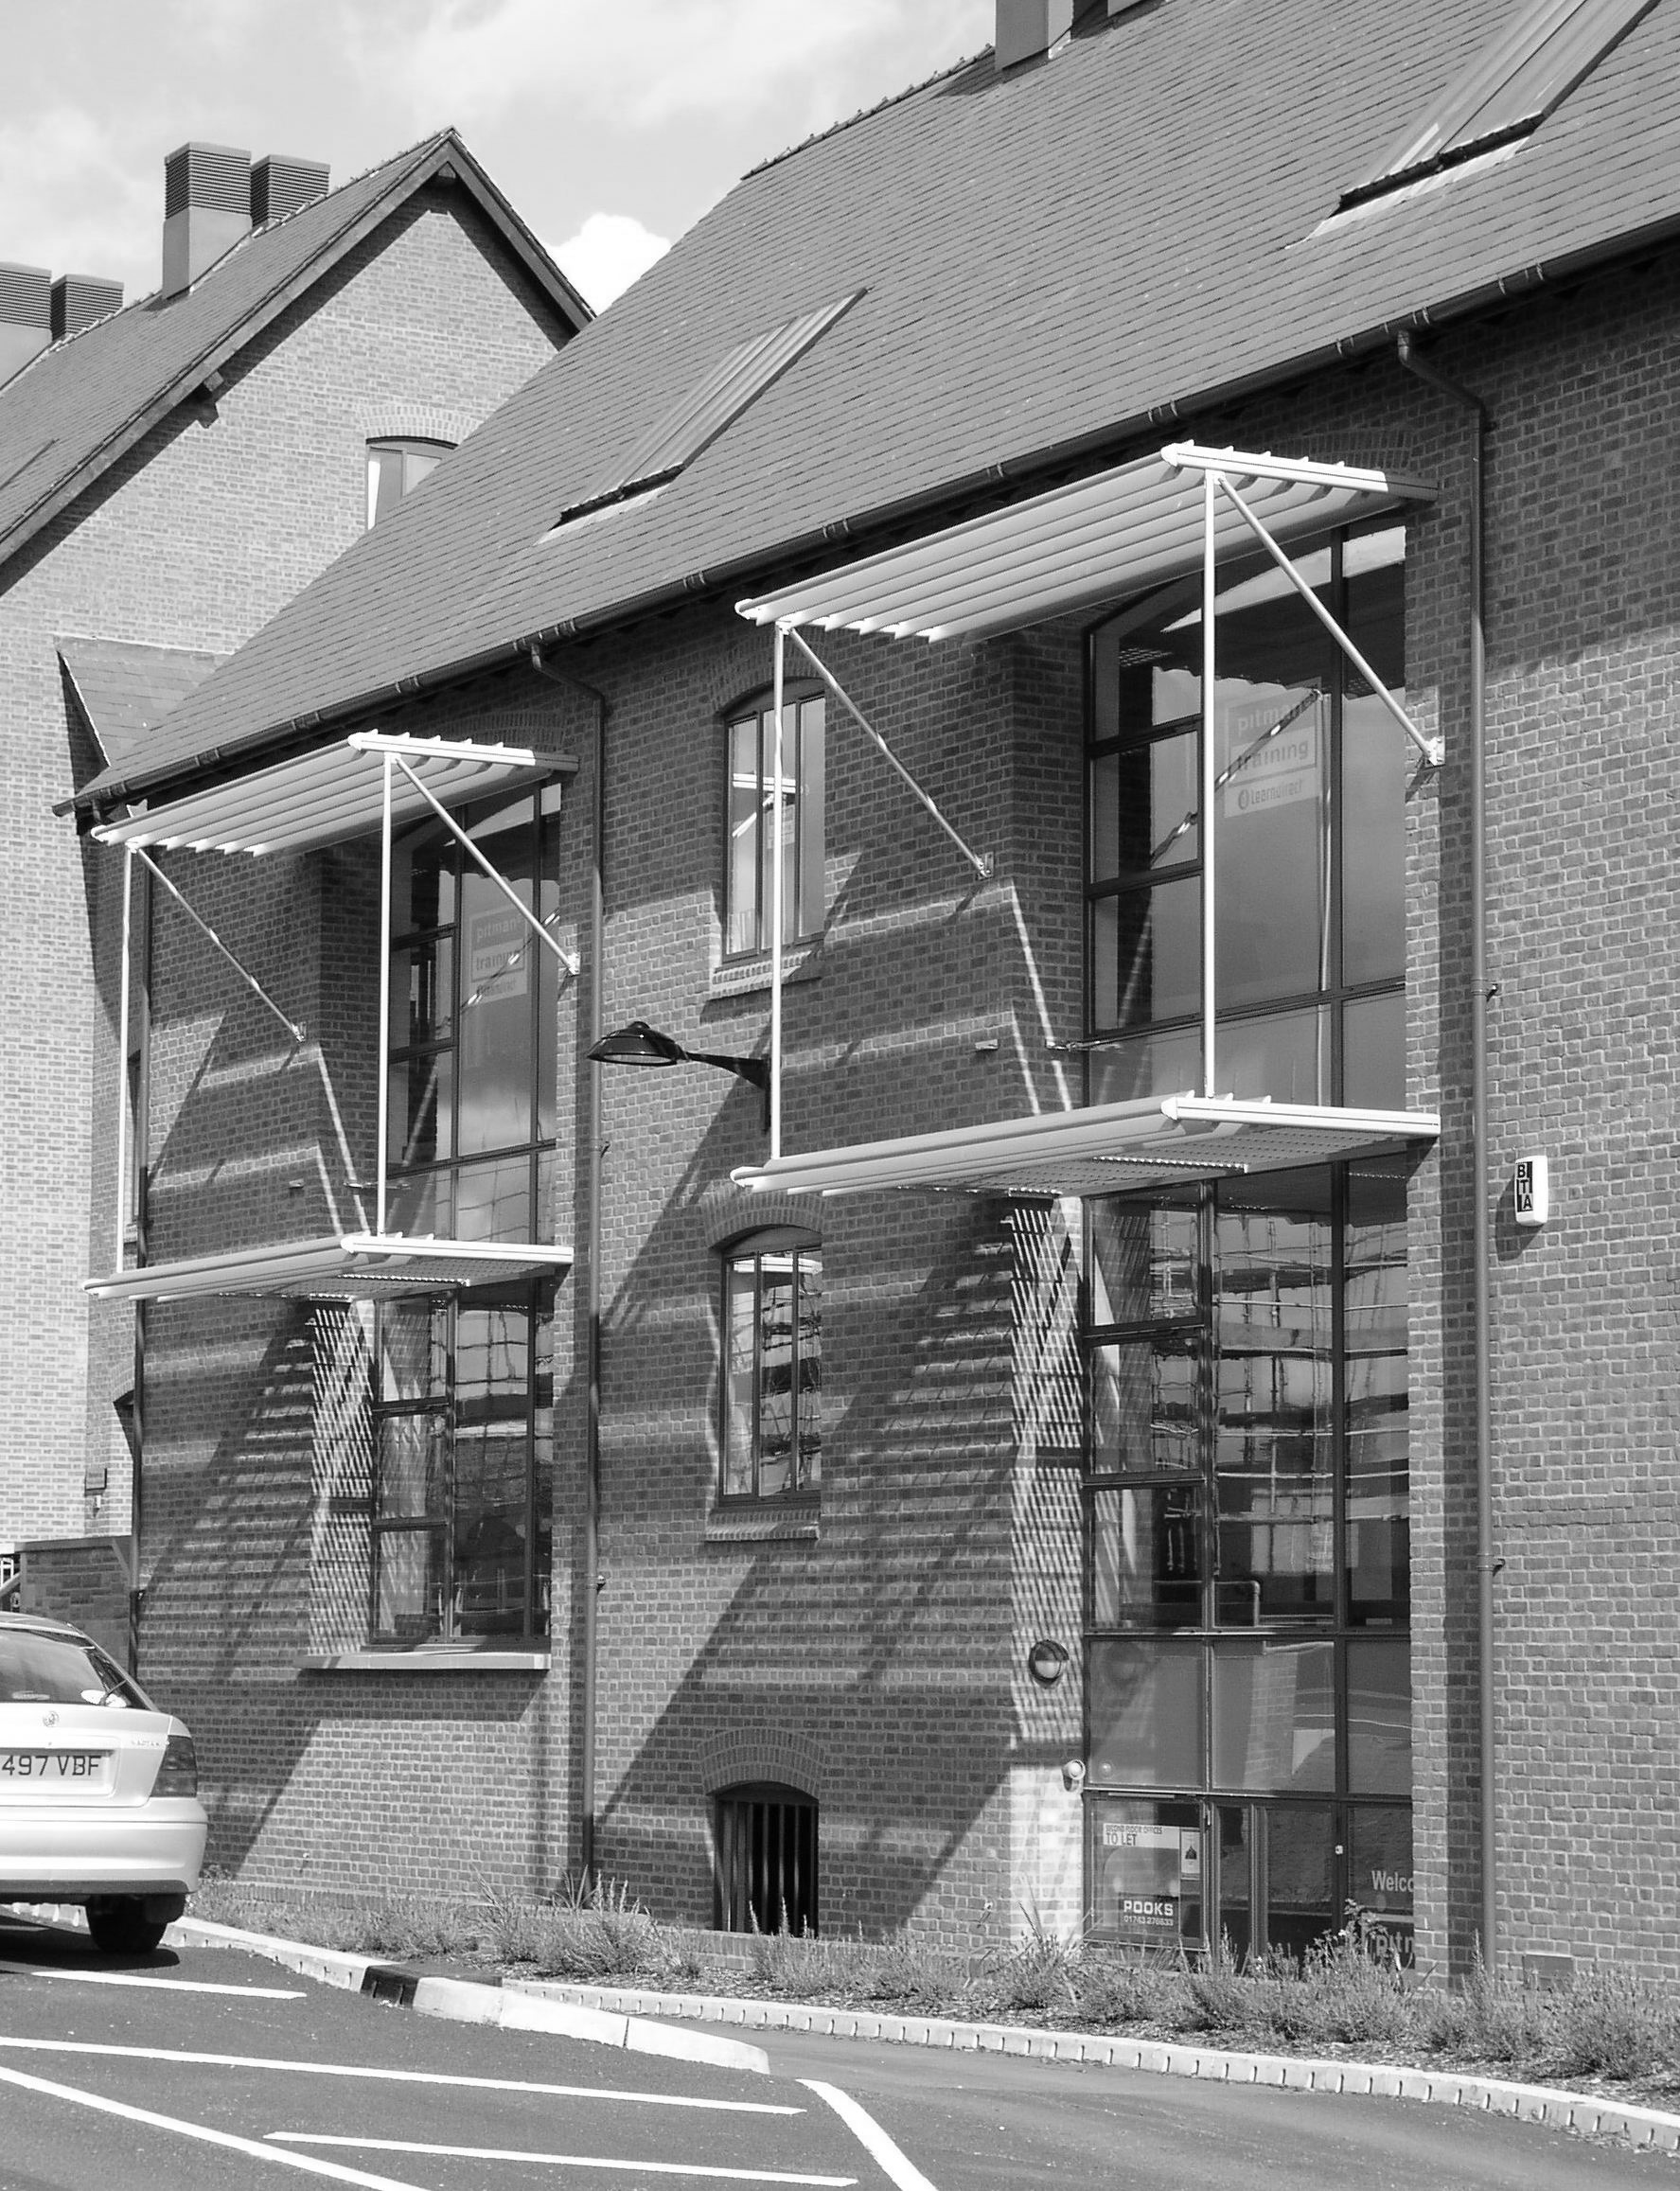 003 Frankwell 7 - Copy bw.png